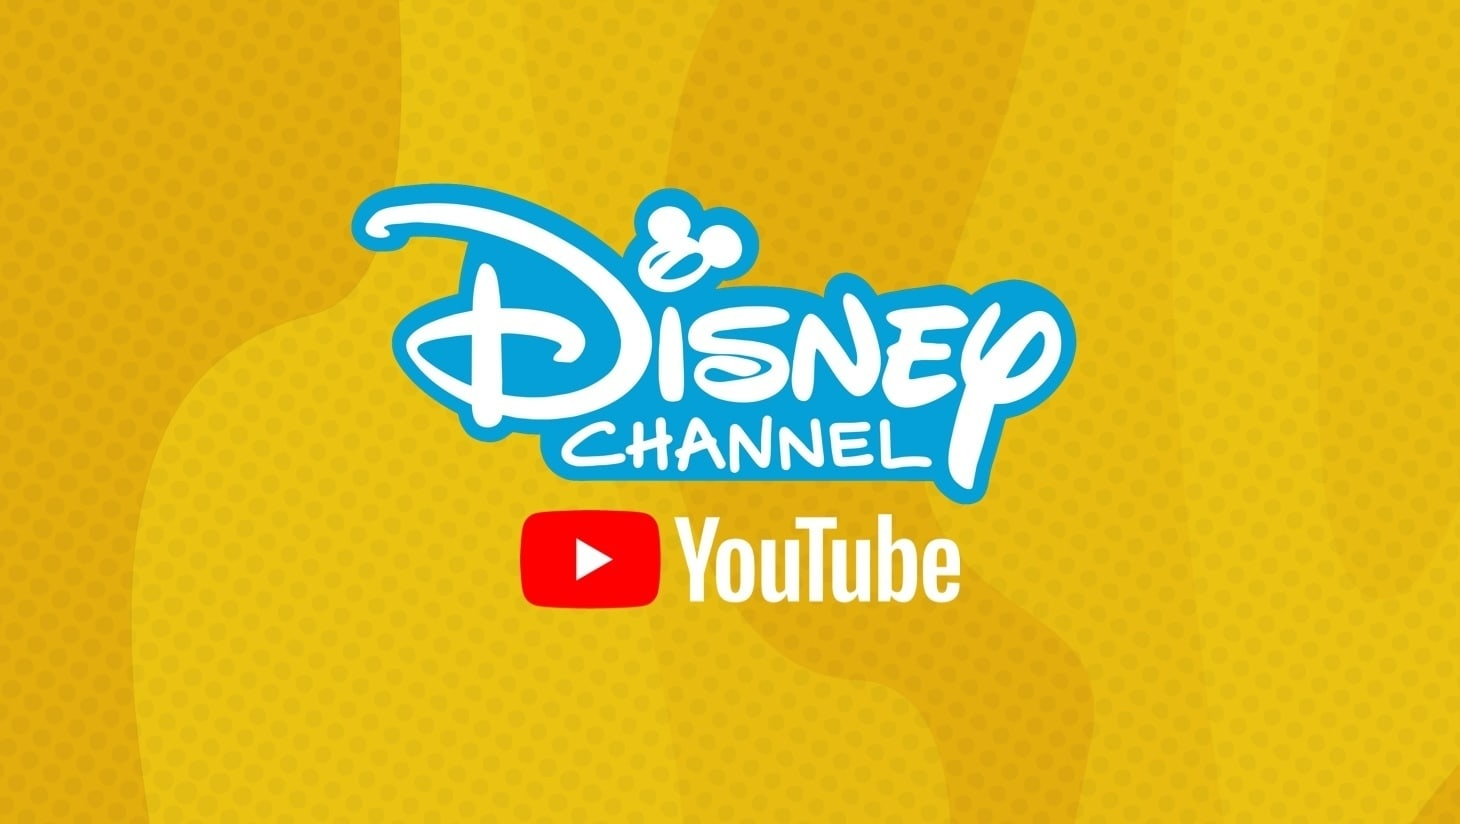 Logo Disney Channel i YouTube na żółtym tle